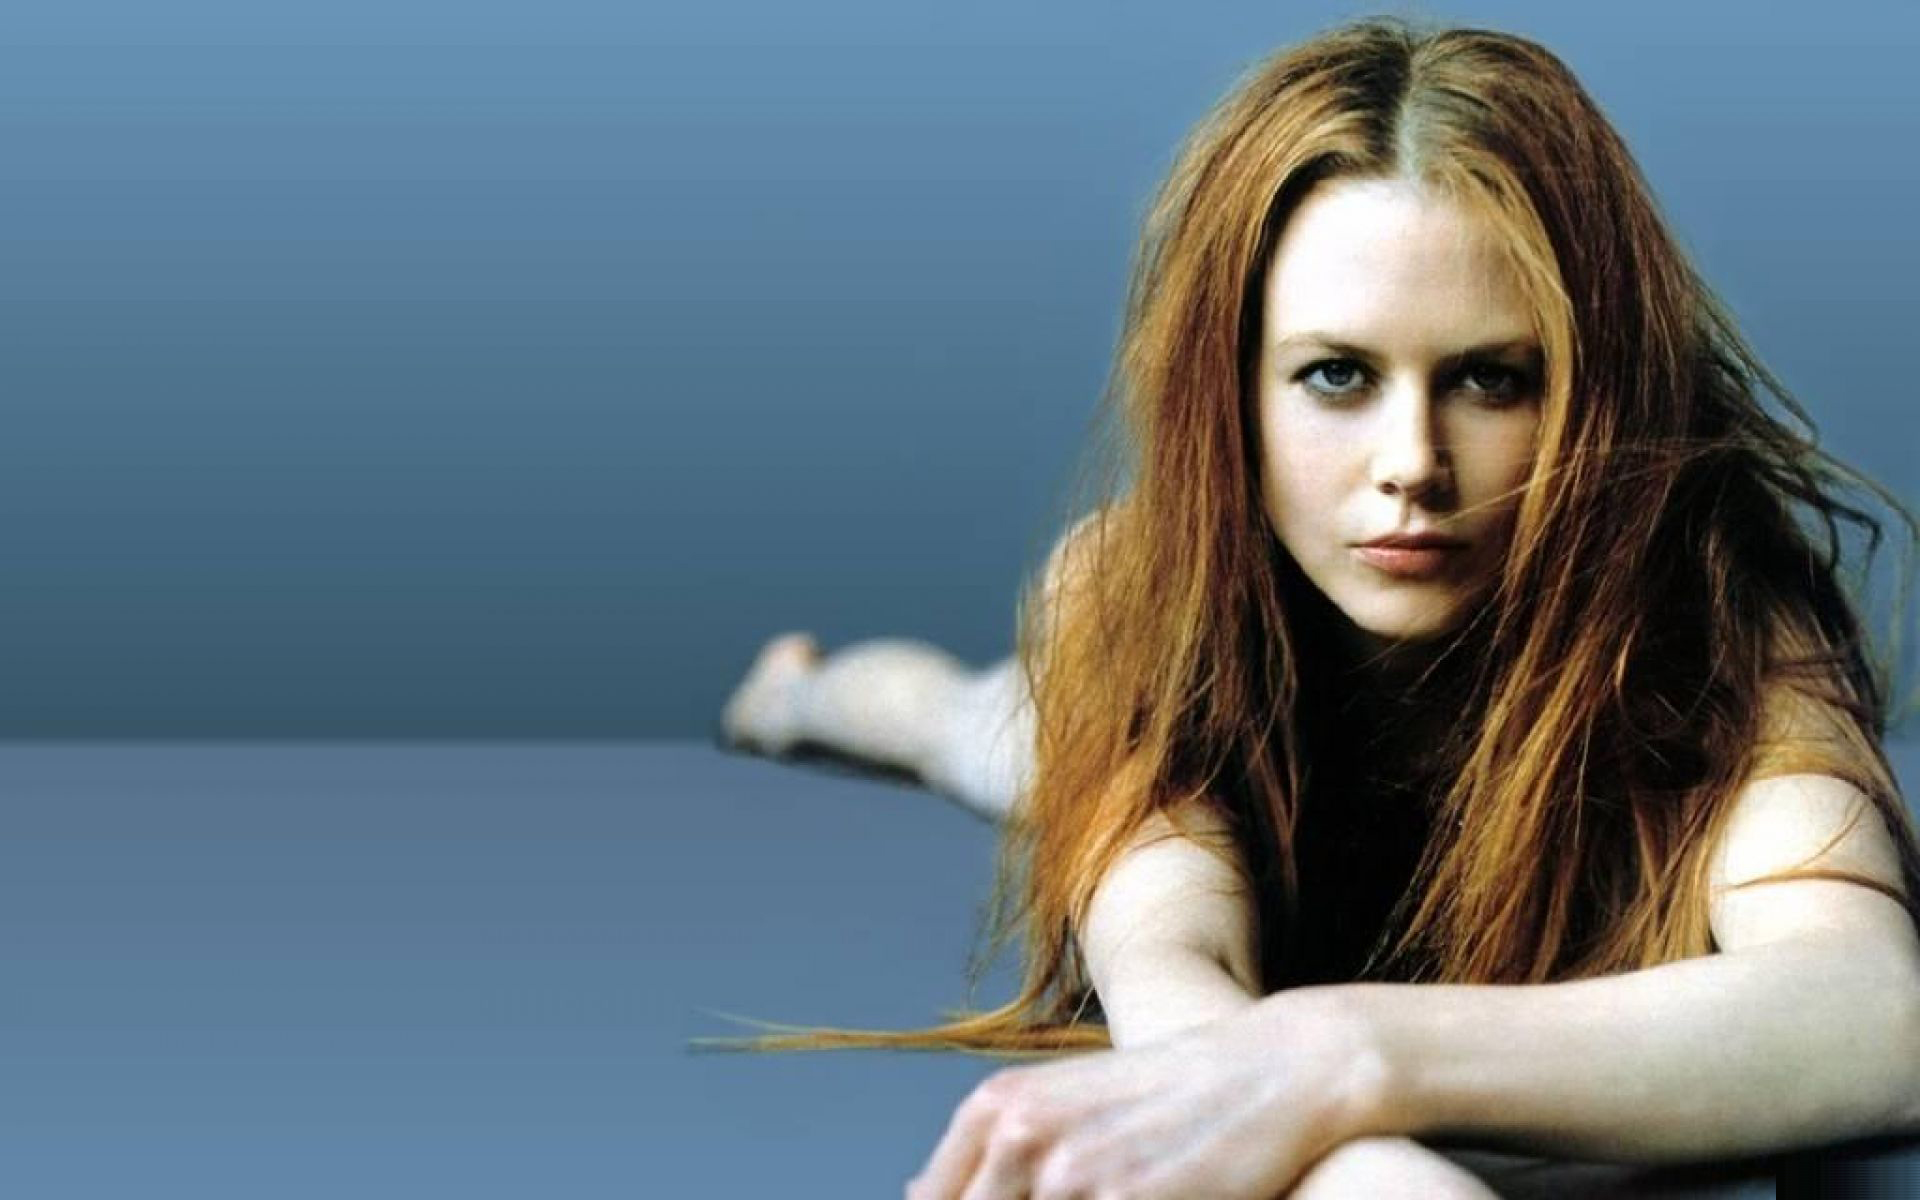 arep hoik wallpapers: Hot Nicole Kidman Pictures